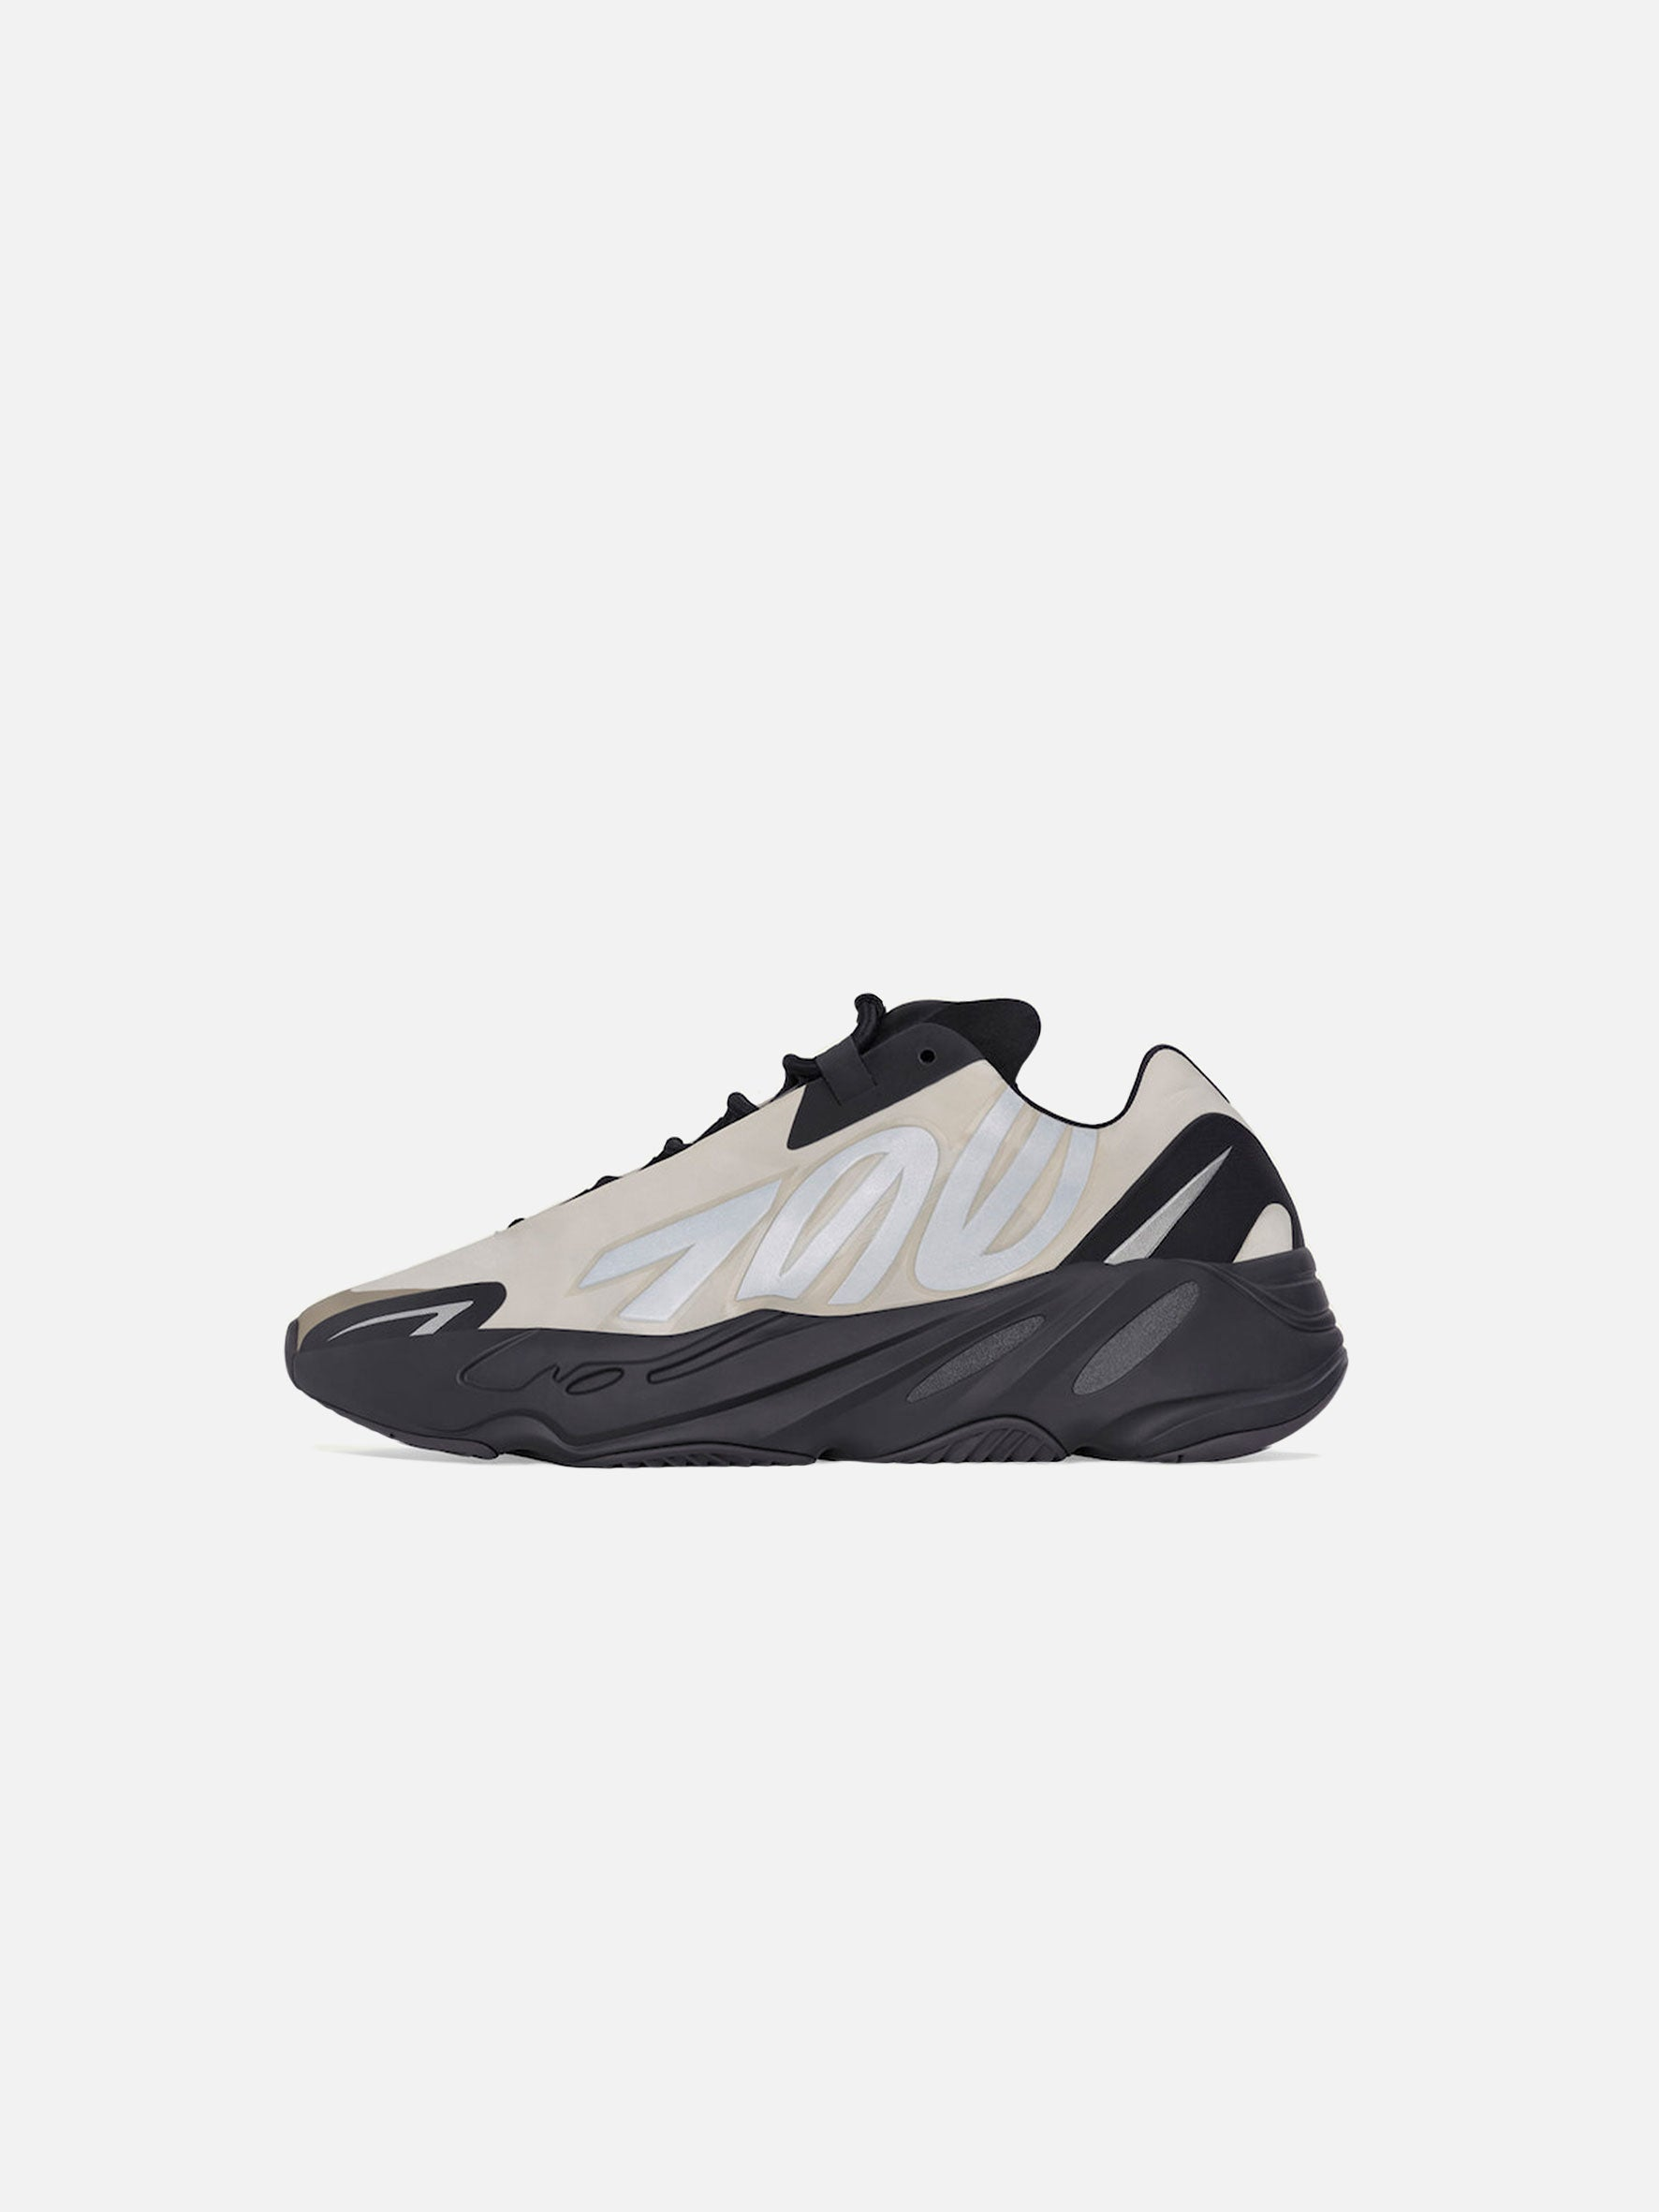 YEEZY Boost 700 MNVN Bone